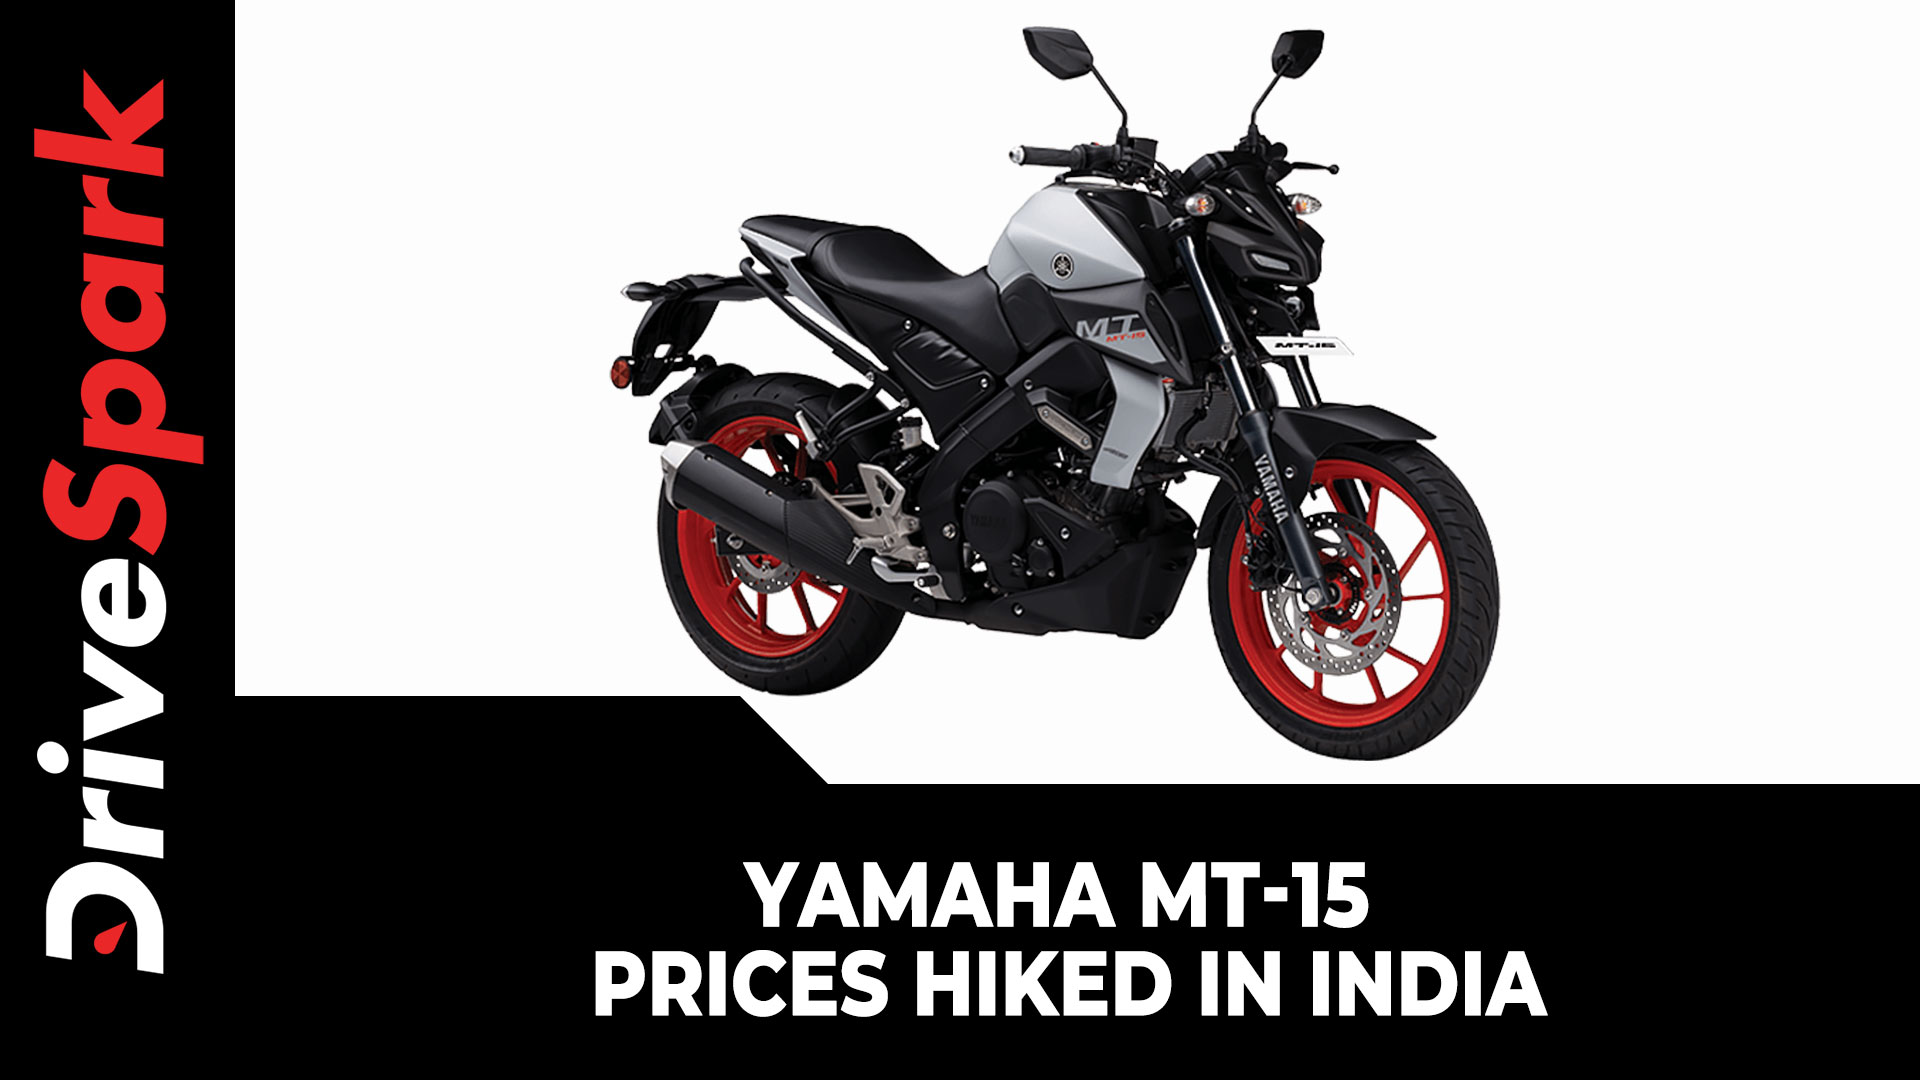 Yamaha MT-15 Prices Hiked In India | New Prices & Other Details